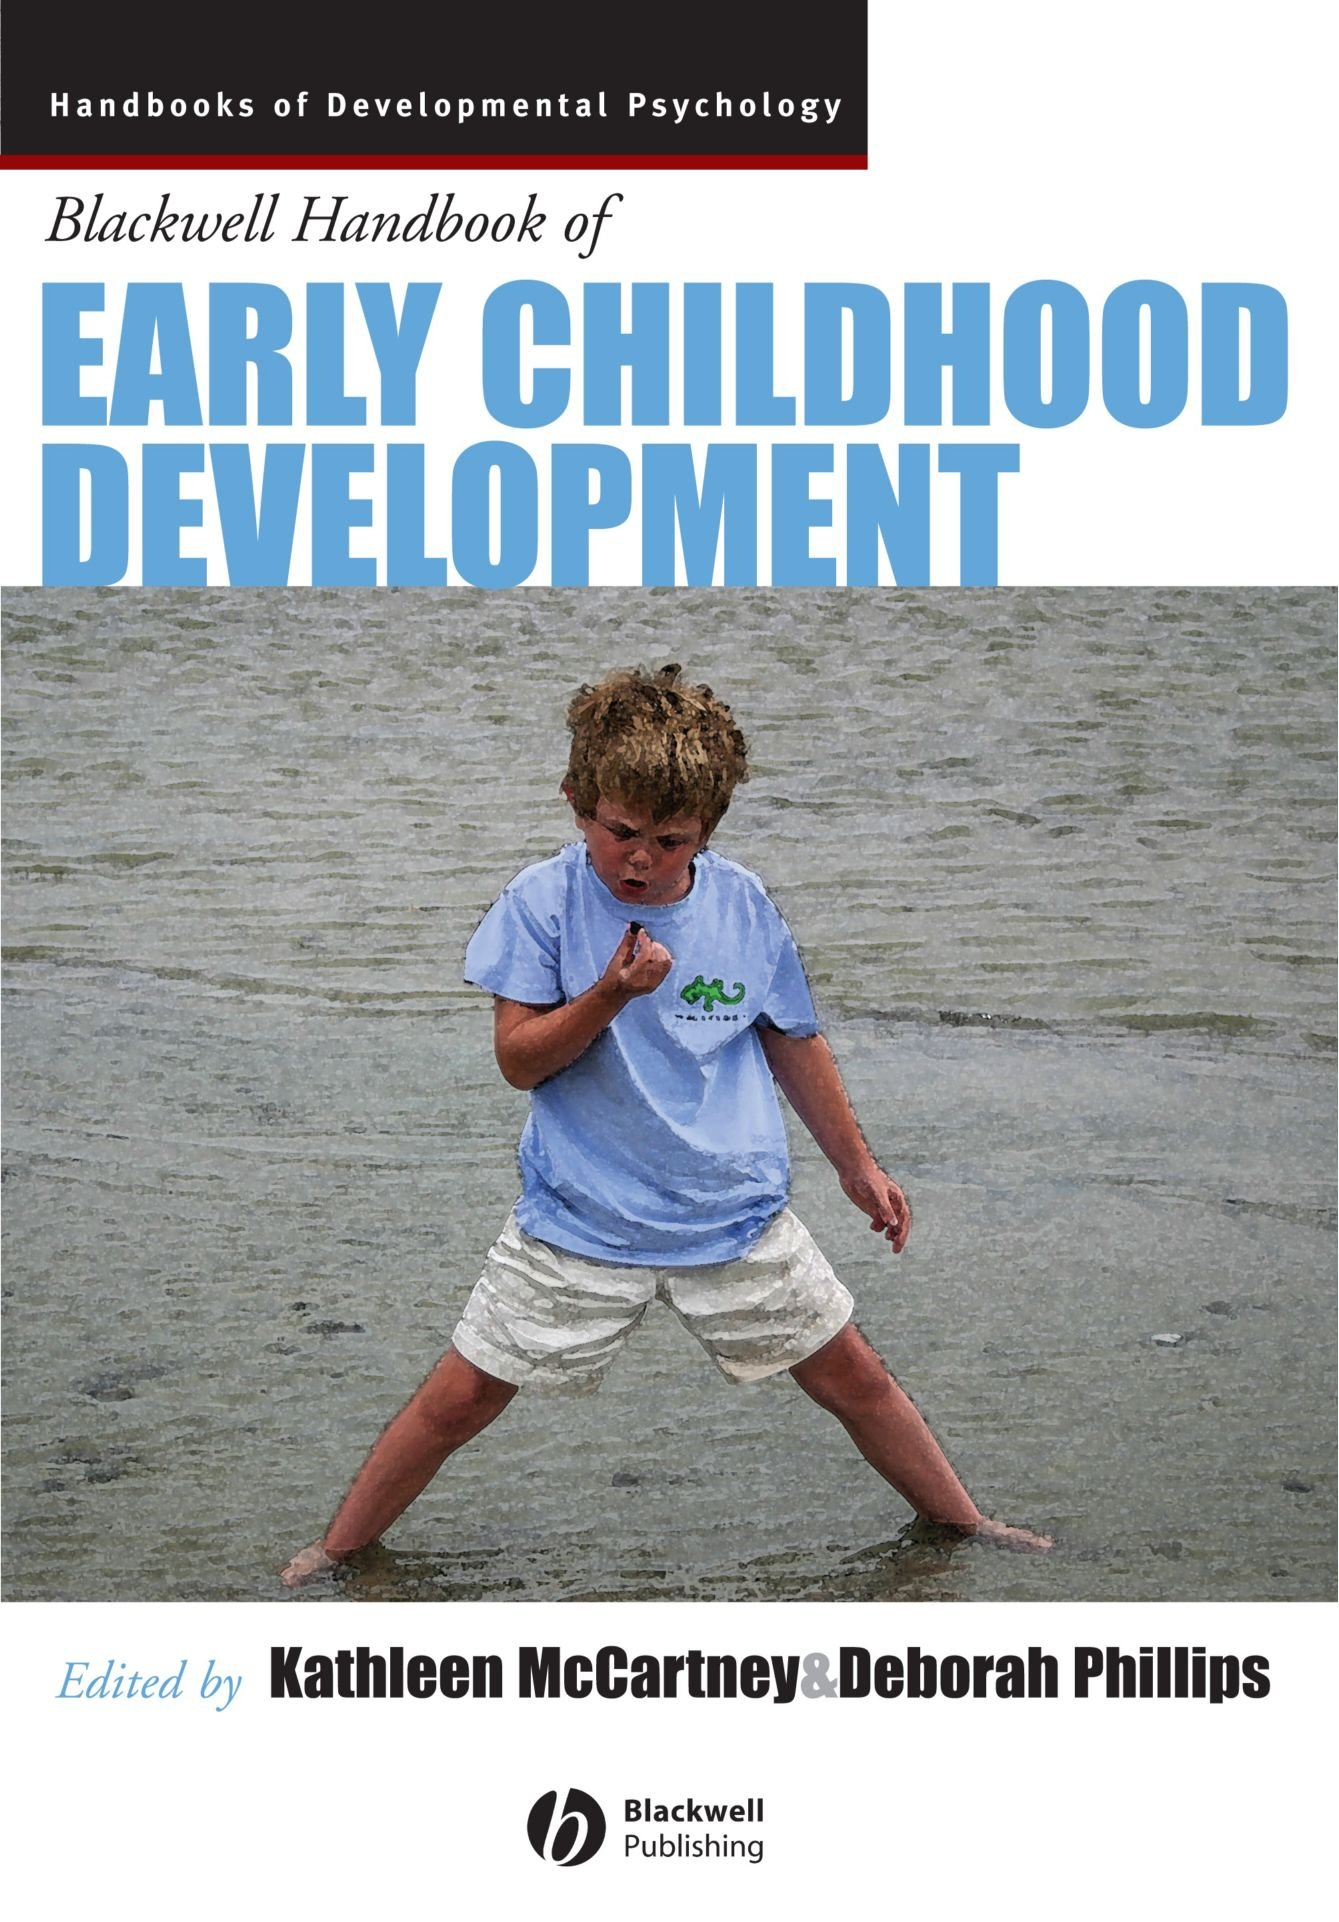 The Blackwell Handbook of Early Childhood Development